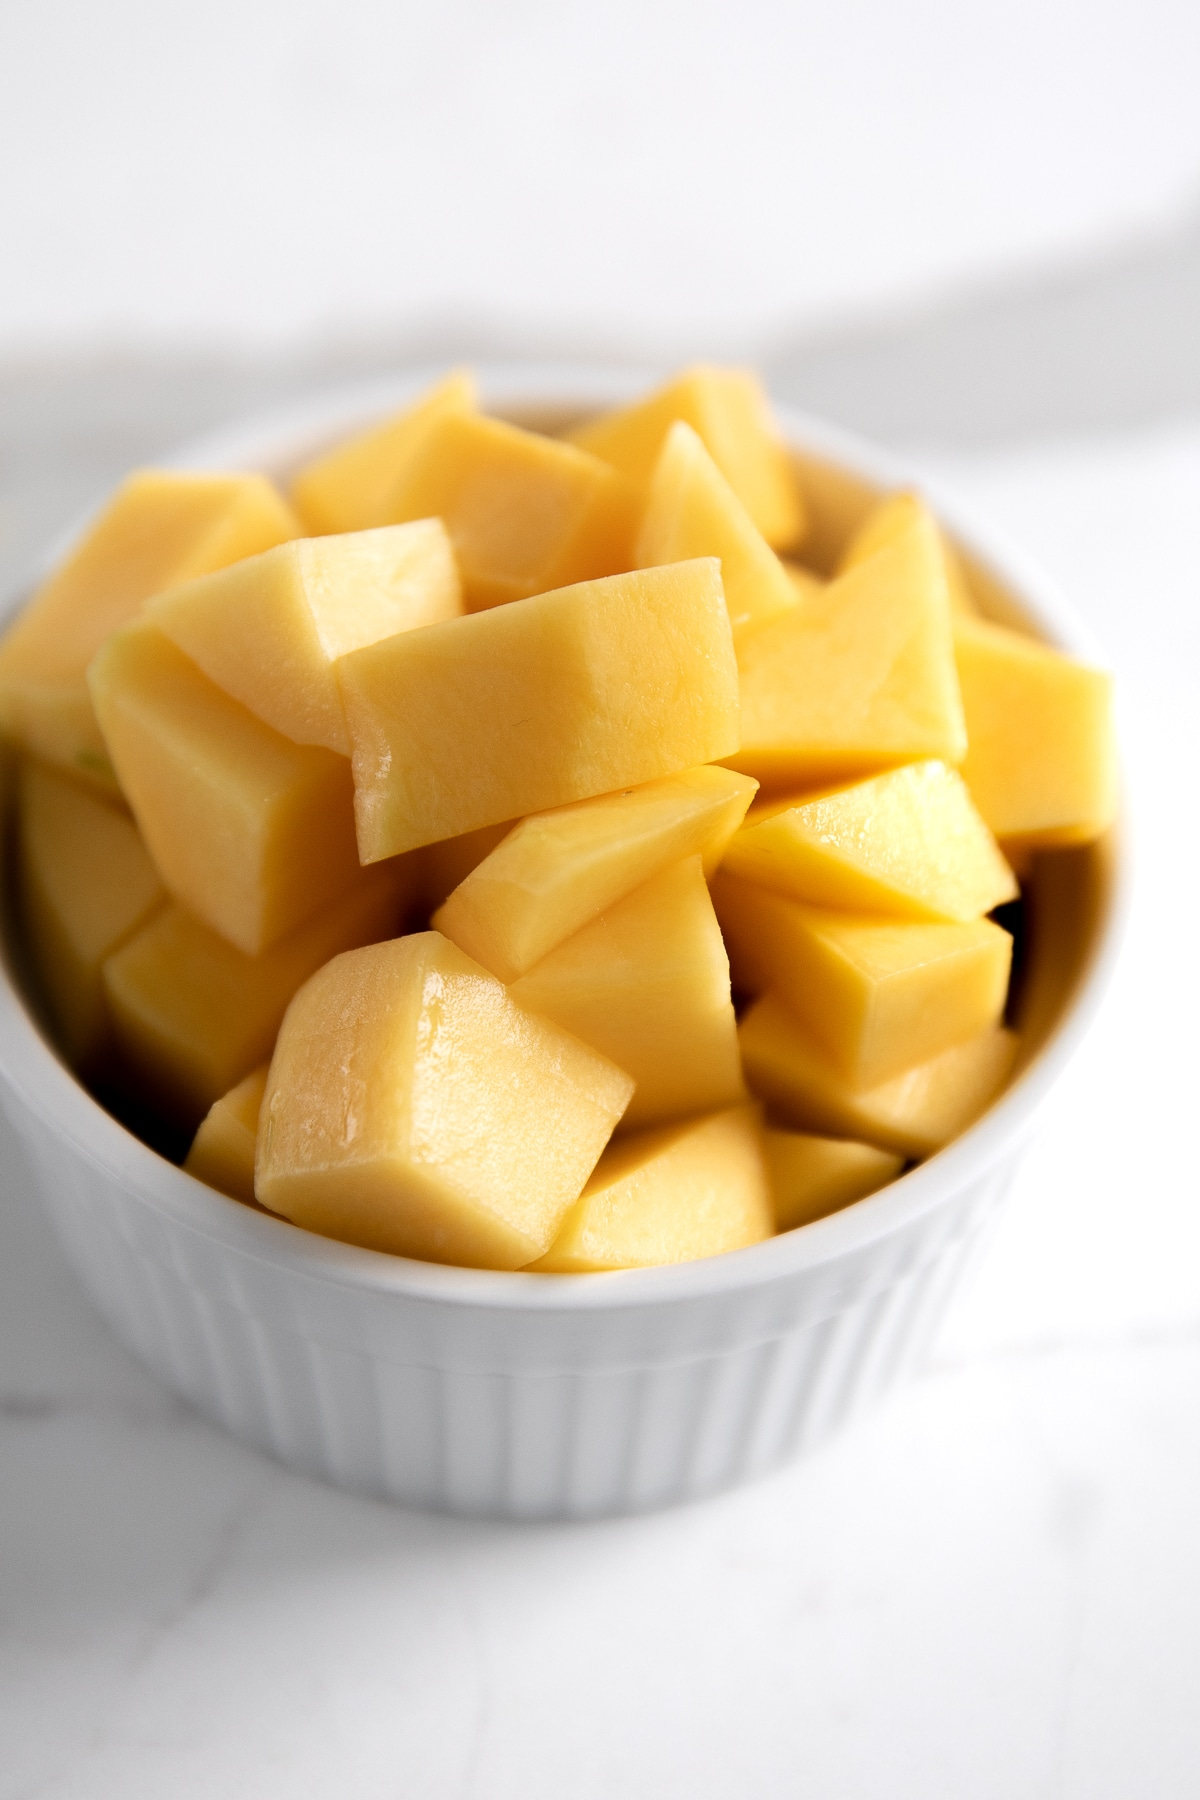 White dish filled with cubes of cut up mango.